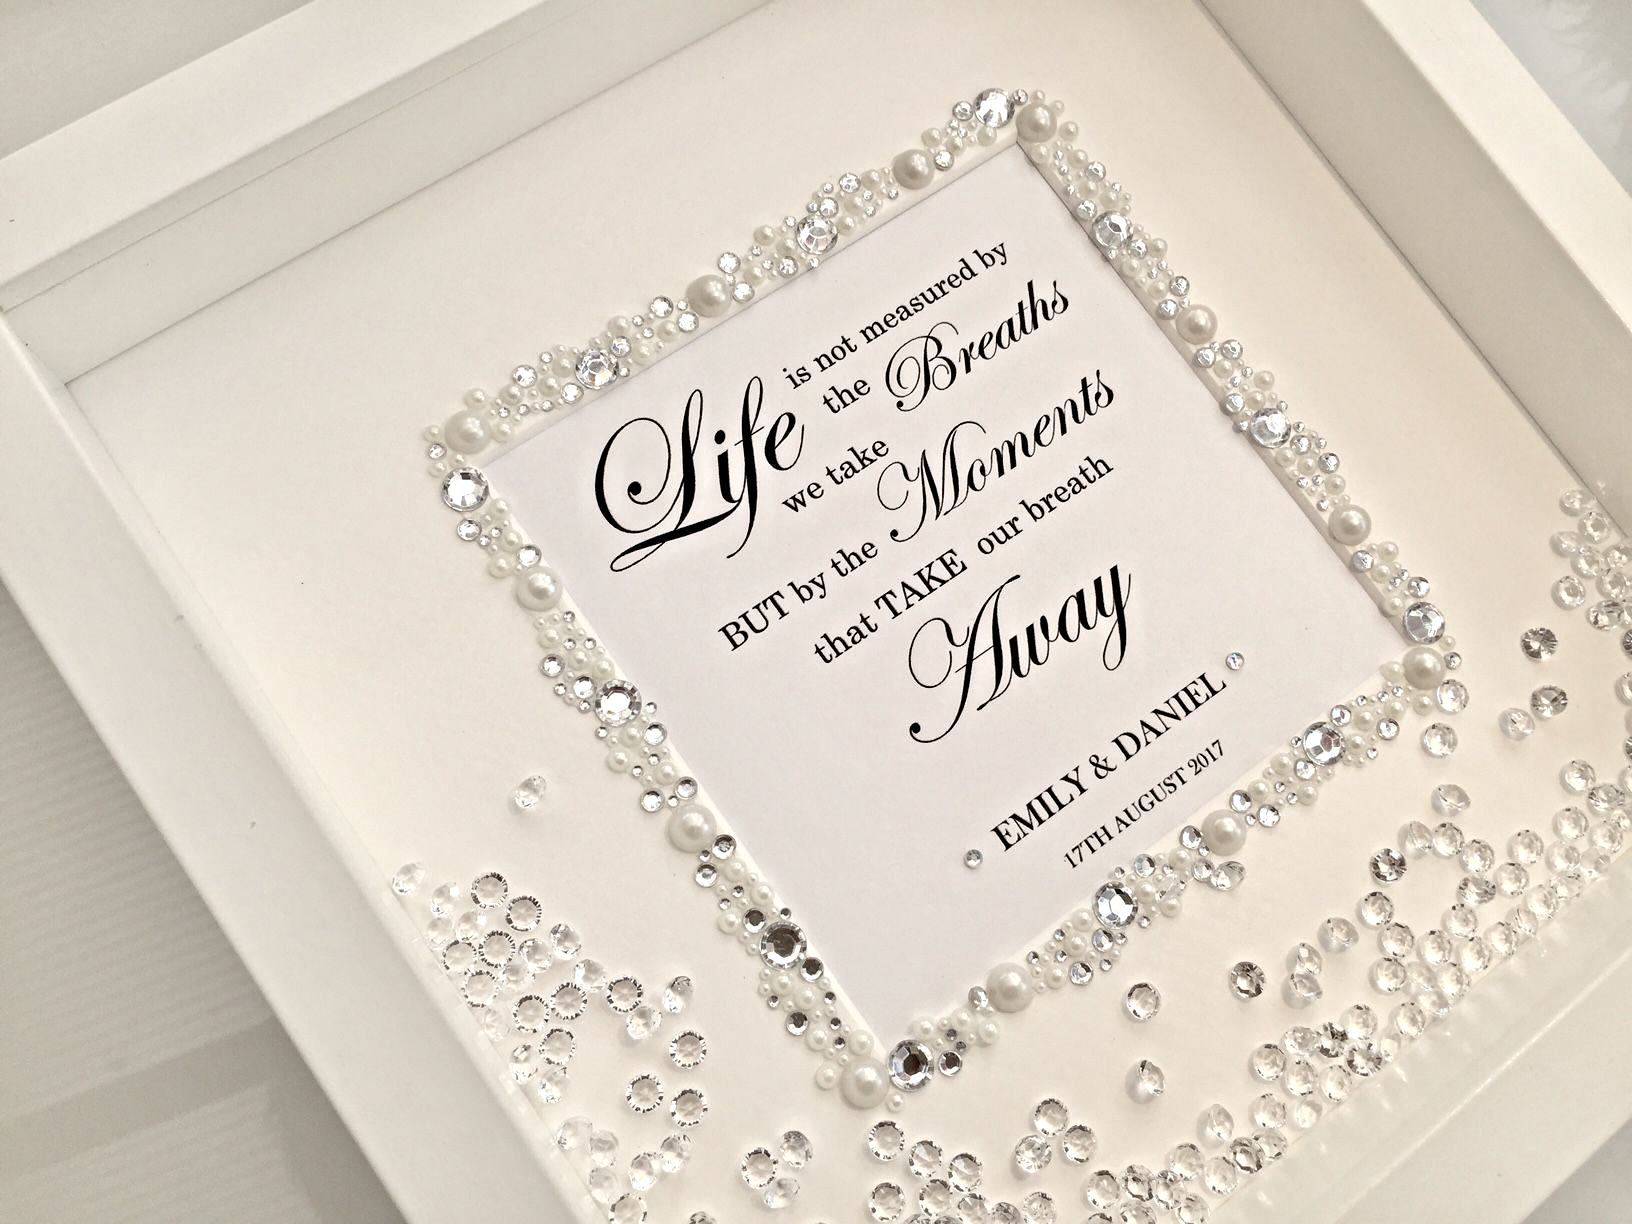 Pin by sue karow on wood signs pinterest box frames wedding